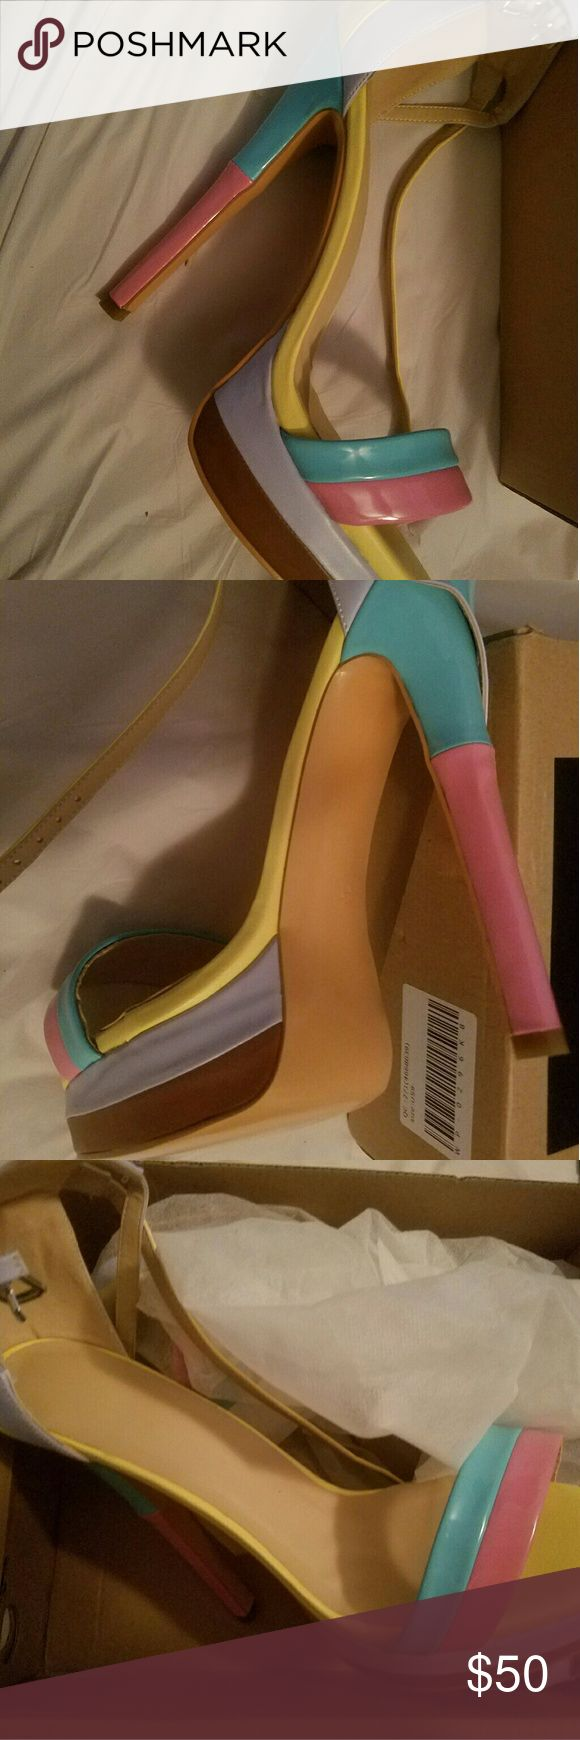 Shoe pie multicolored platform heel open toe shoes Platform heel. Pink, yellow, tan and blue stiletto heels. Never worn. shoe pie Shoes Heels